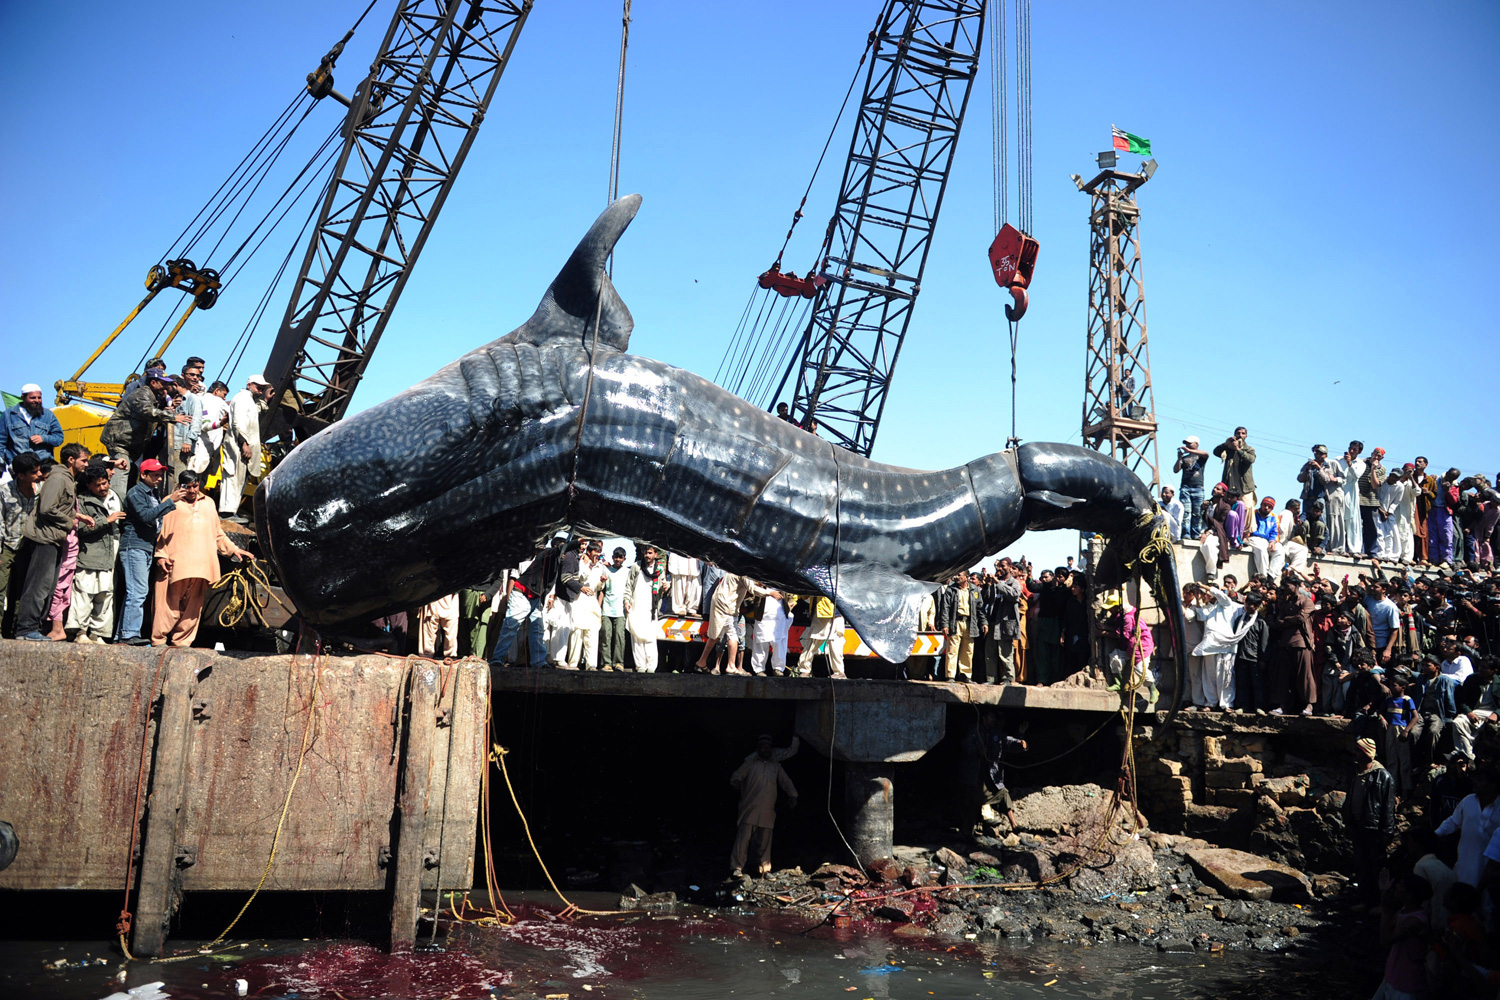 February 7, 2012. Pakistani fishermen use cranes to pull the carcass of a whale shark from the waters at a fish harbour in Karachi. The 40-feet whale, weighing about 6 tons, was found dead in the Arabian Sea.